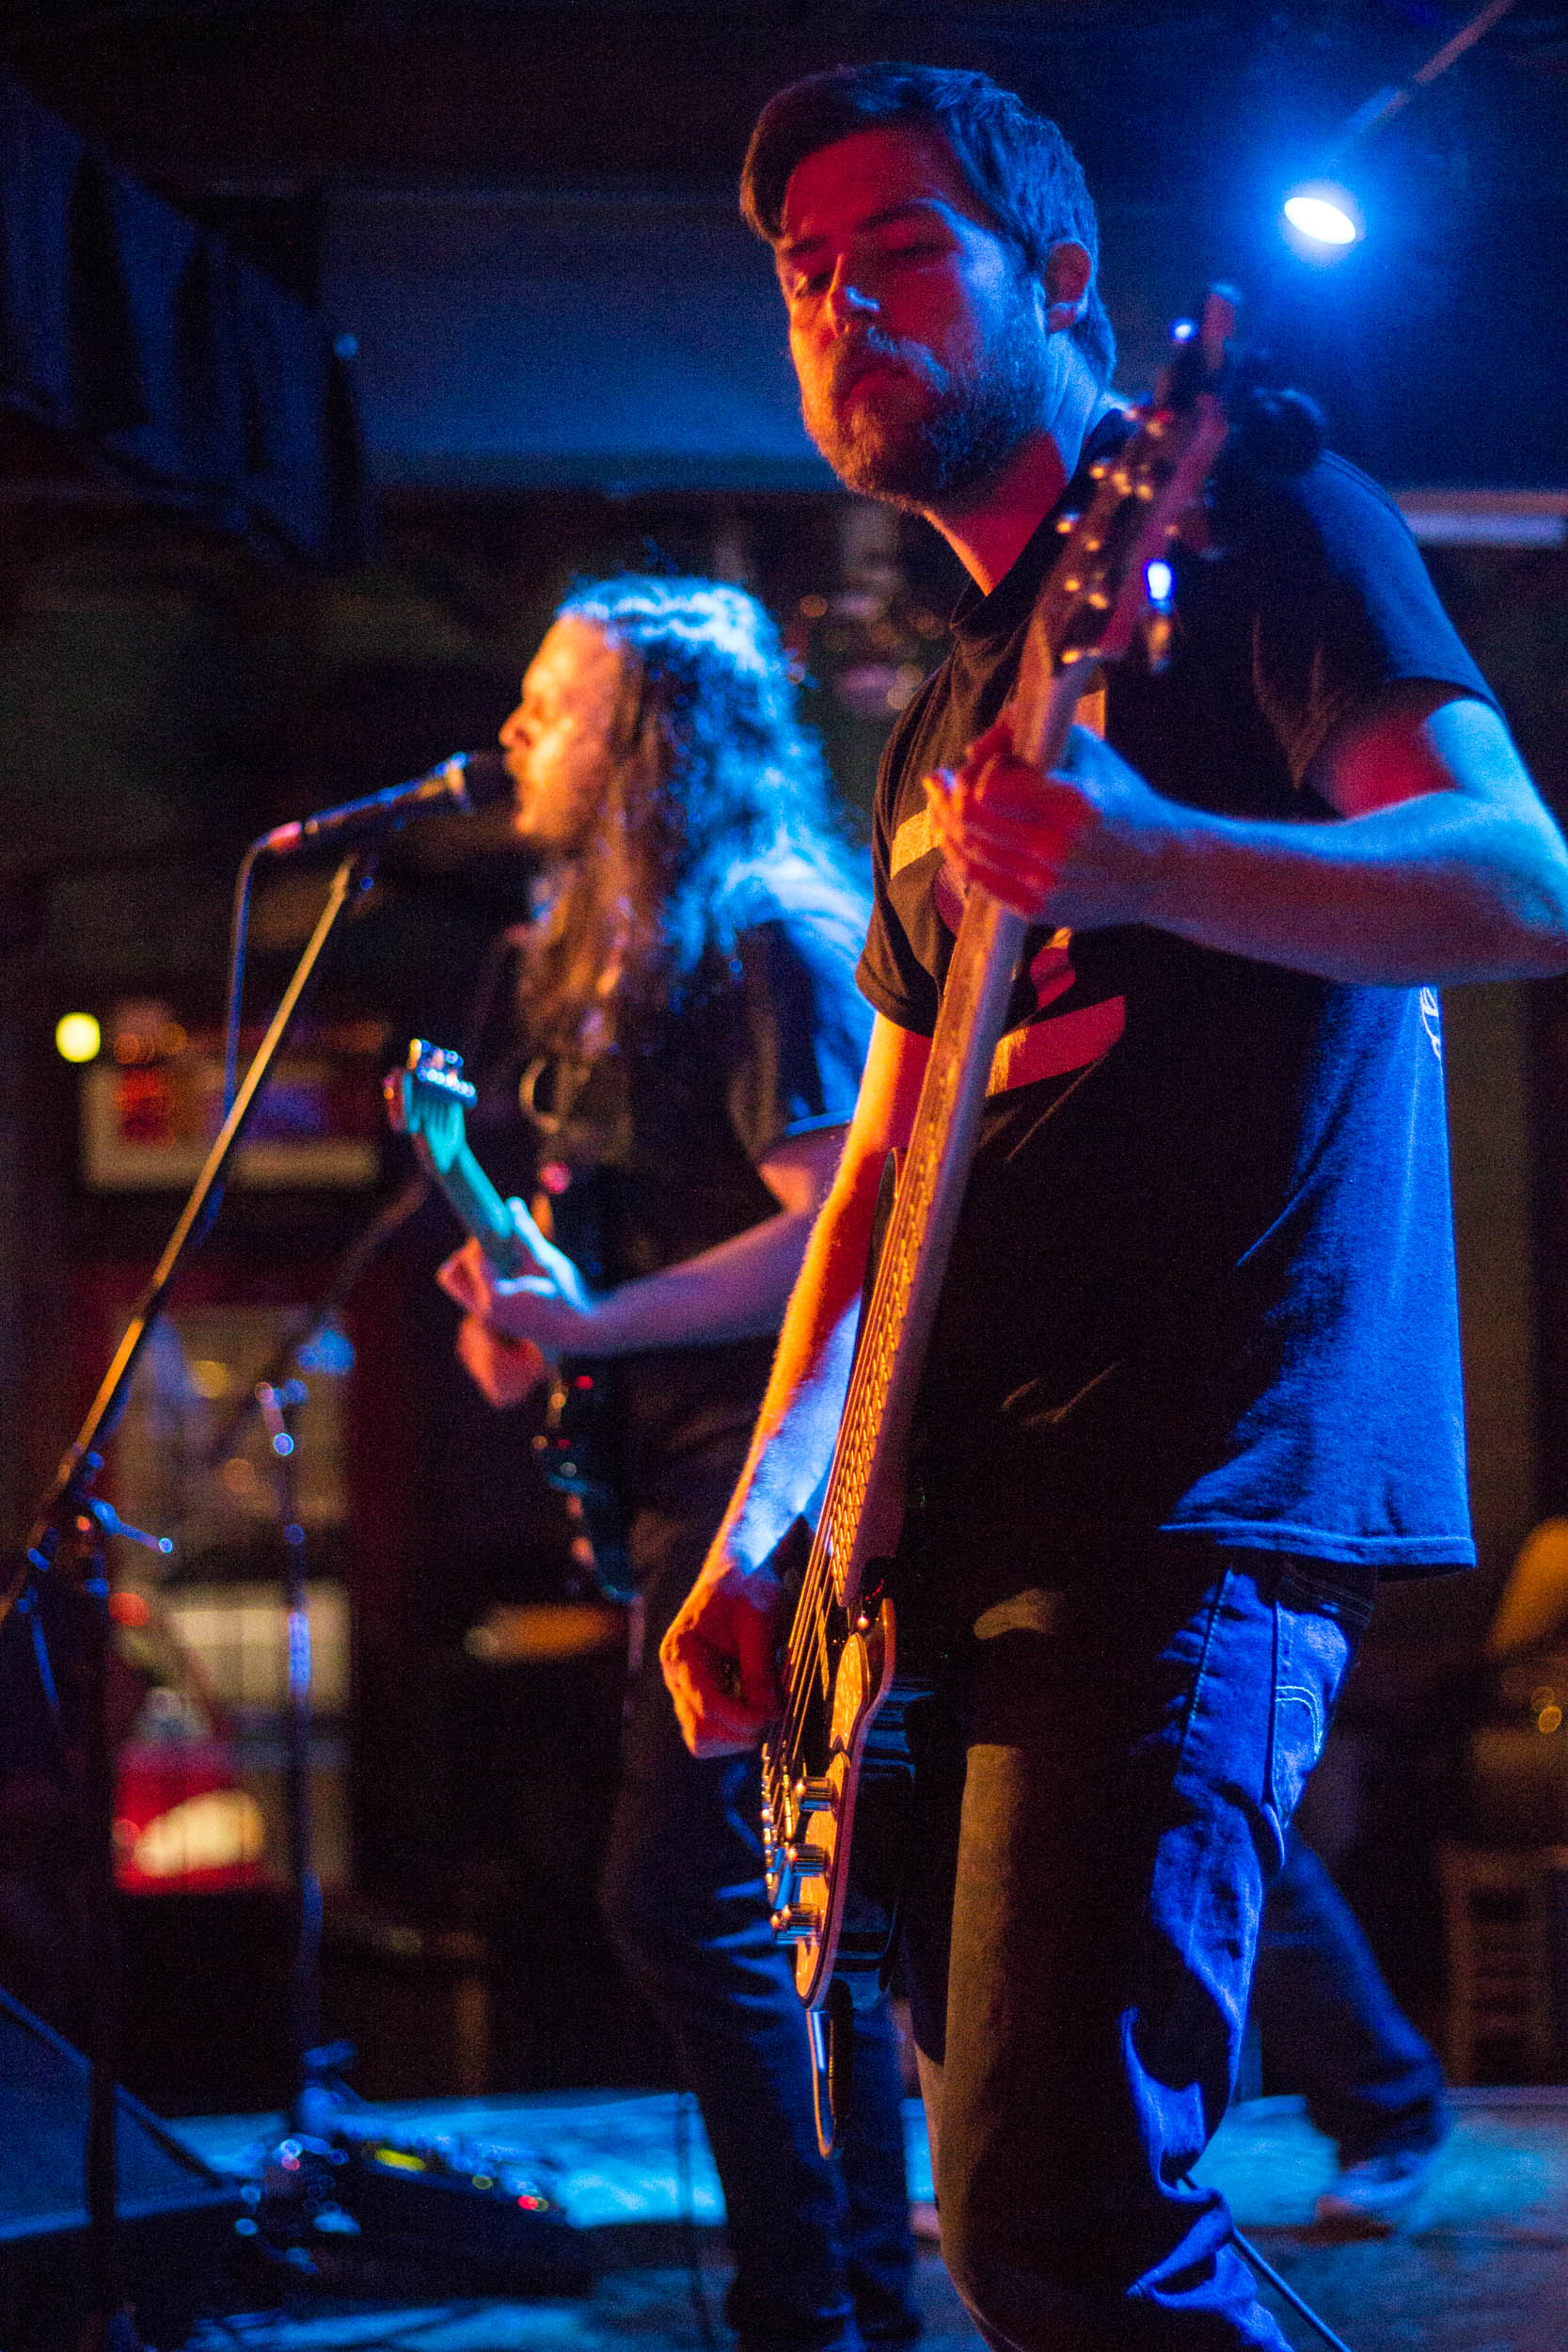 051317_Least of These at Dan's-18.jpg